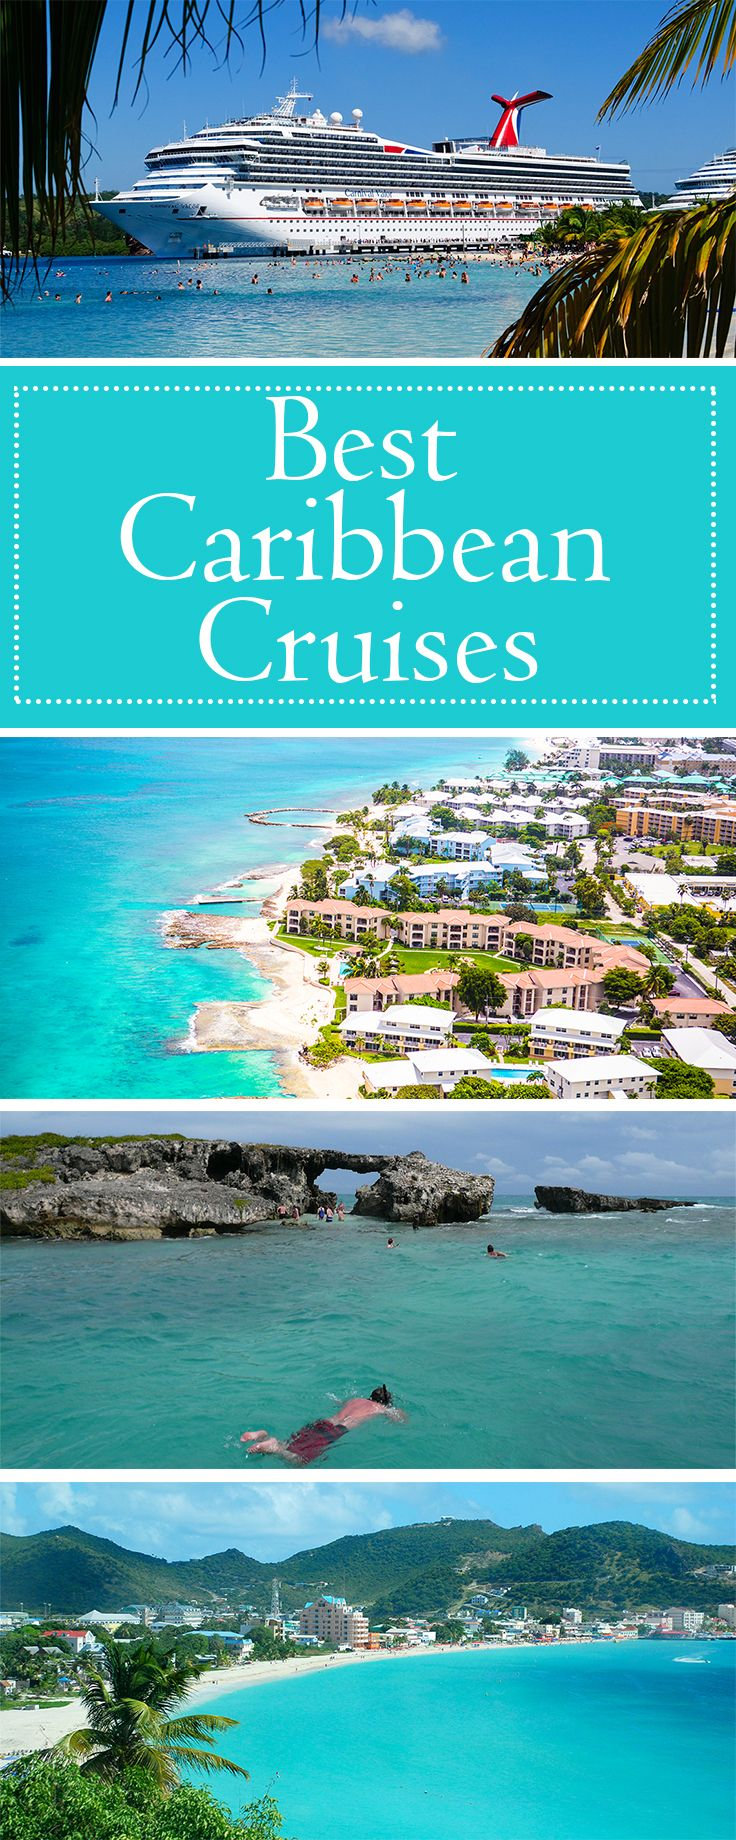 Best Caribbean Cruise: A Cruise Perfect for Your Travels | Caribbean